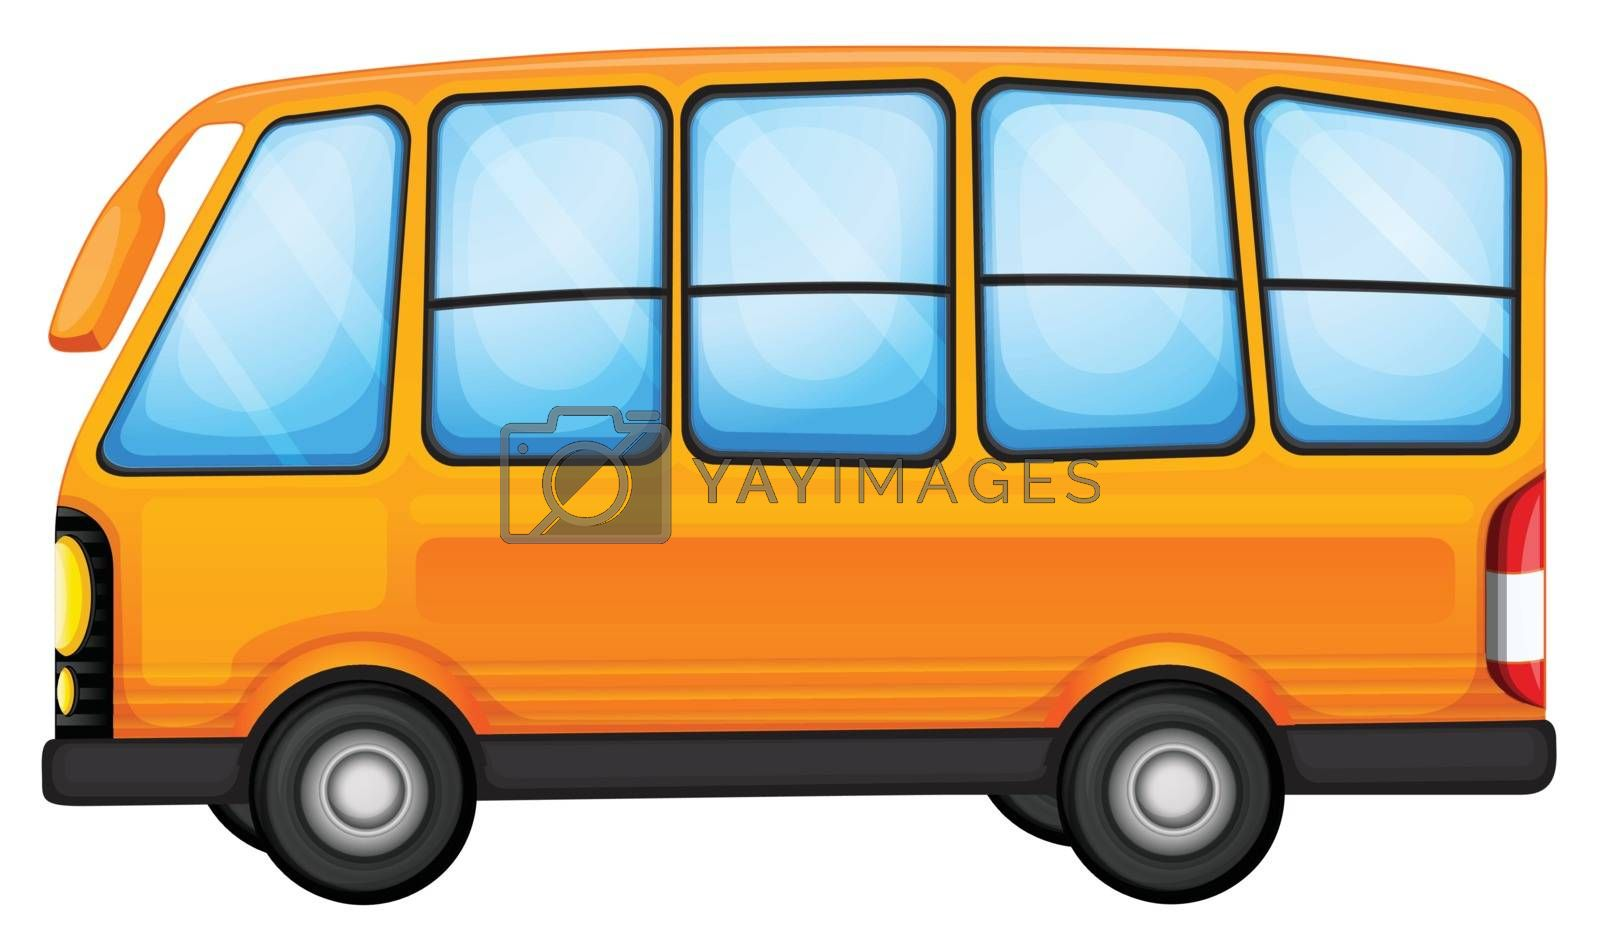 Royalty free image of A big bus by iimages